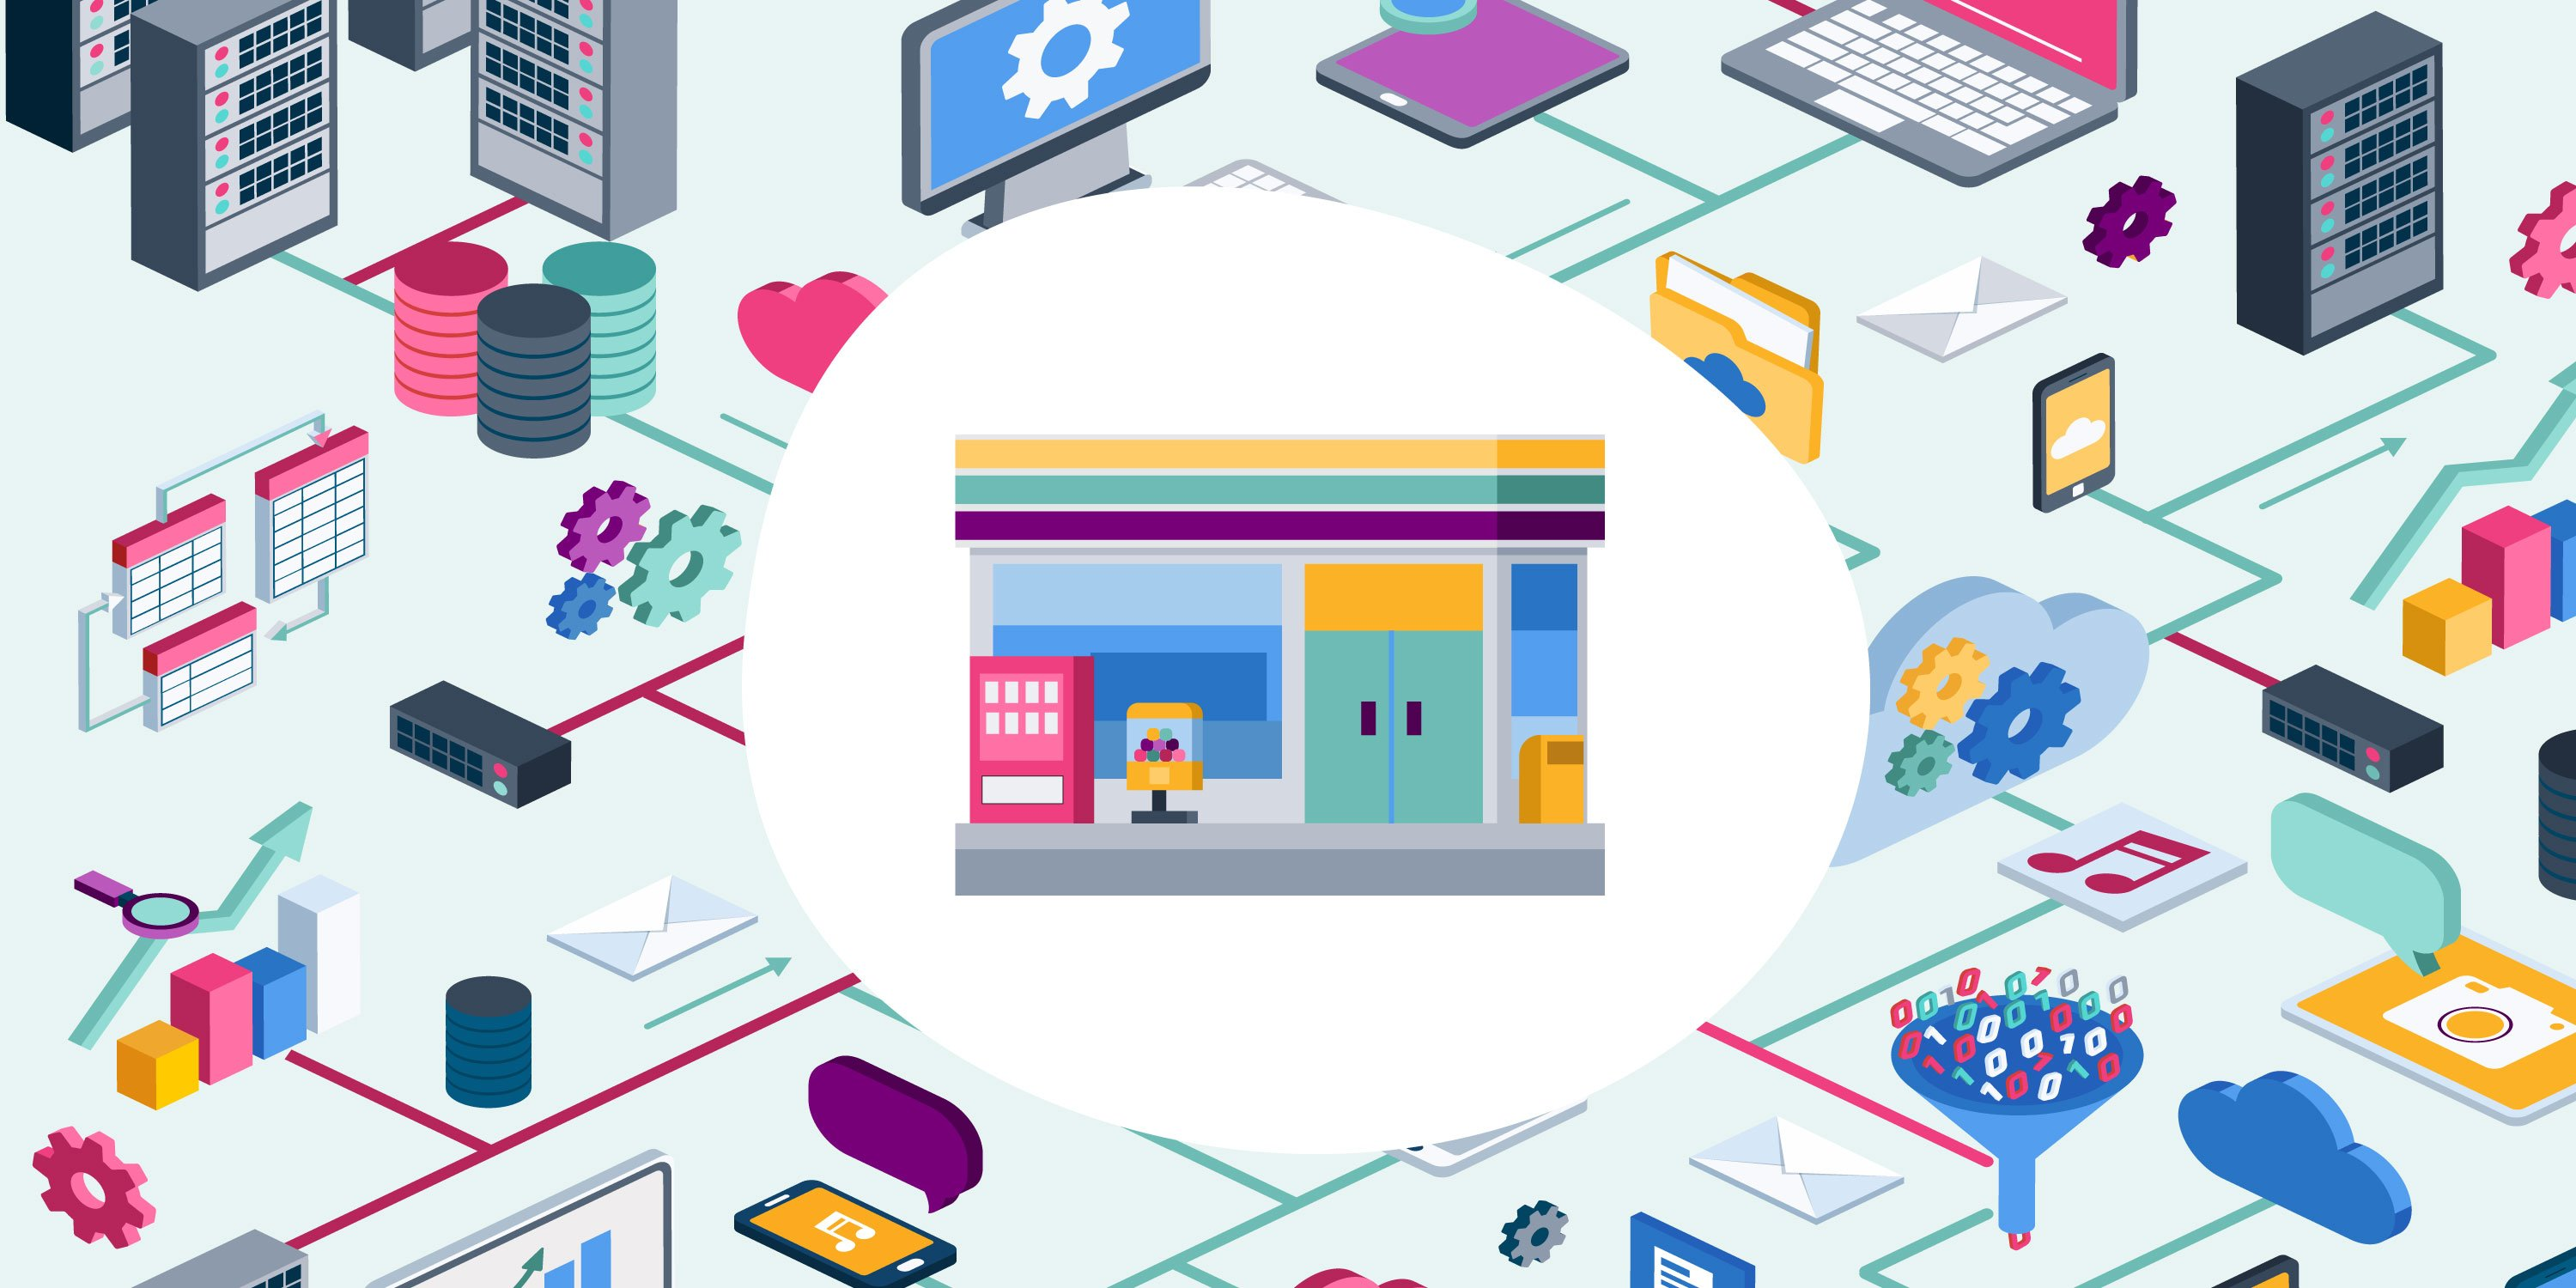 Reitan Convenience Uses Application Portfolio Management to Connect IT to Business